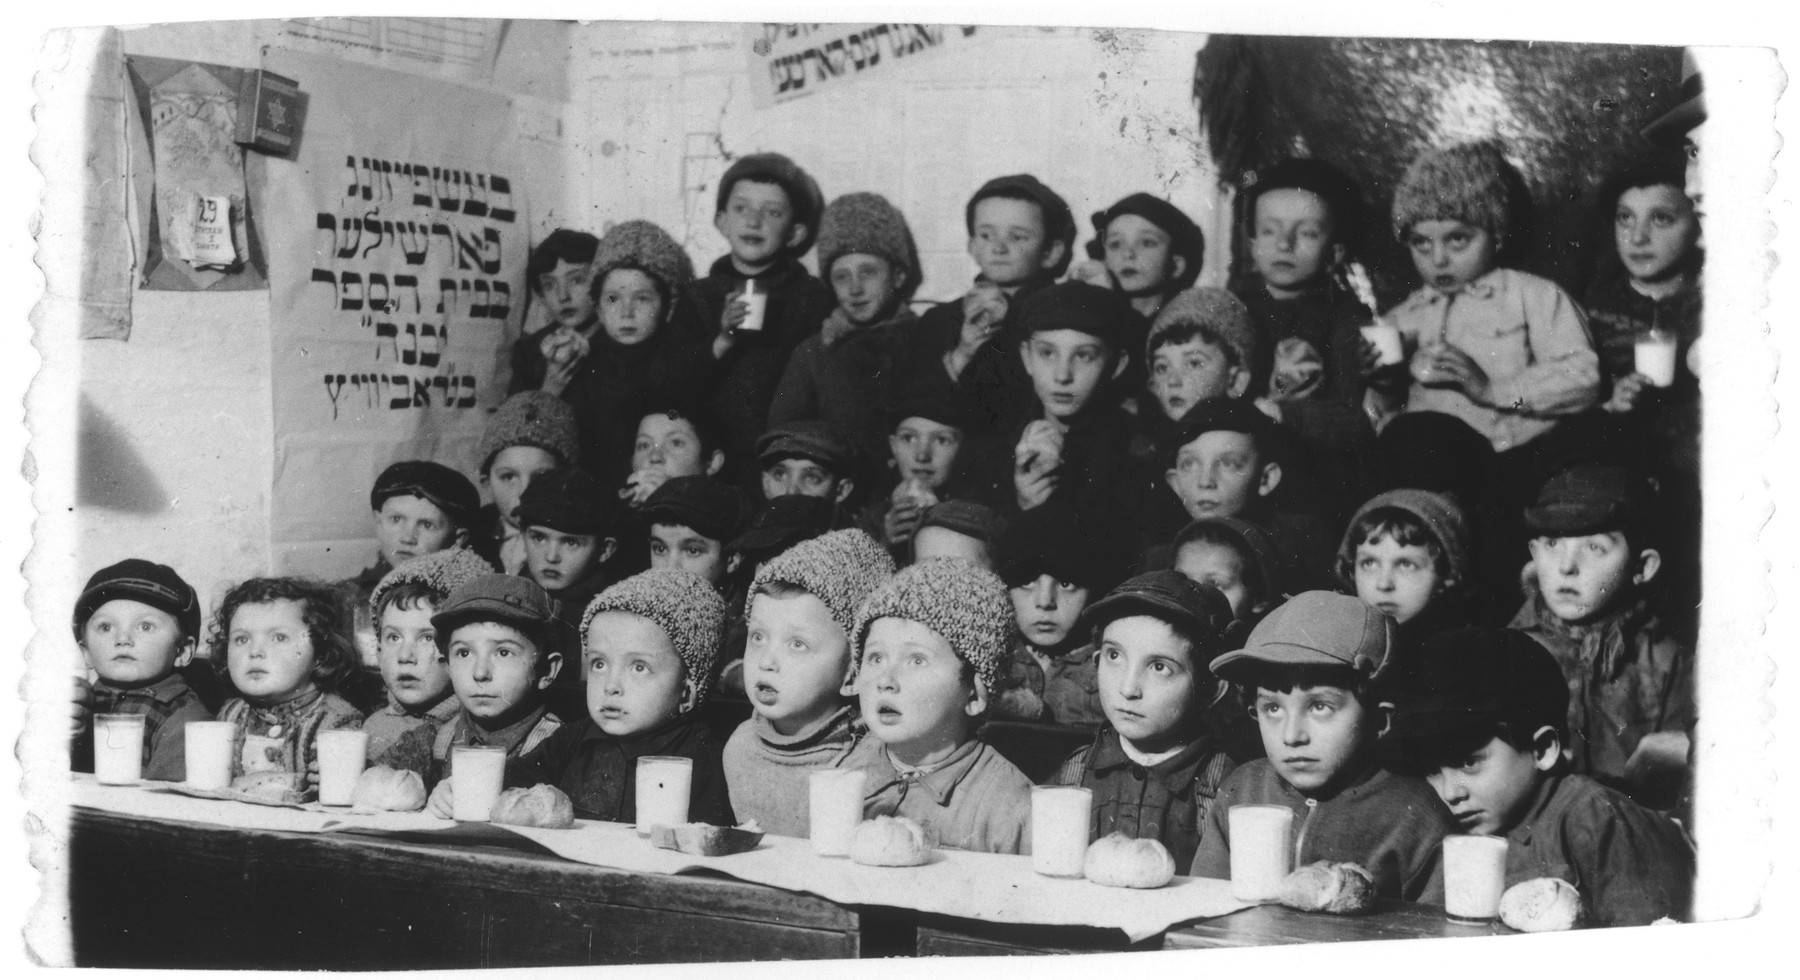 Group portrait of young Jewish children having a snack at the Yavneh Hebrew school in Grabowiec.  Lila Rajs, the only girl in the class, is seated second from the left.